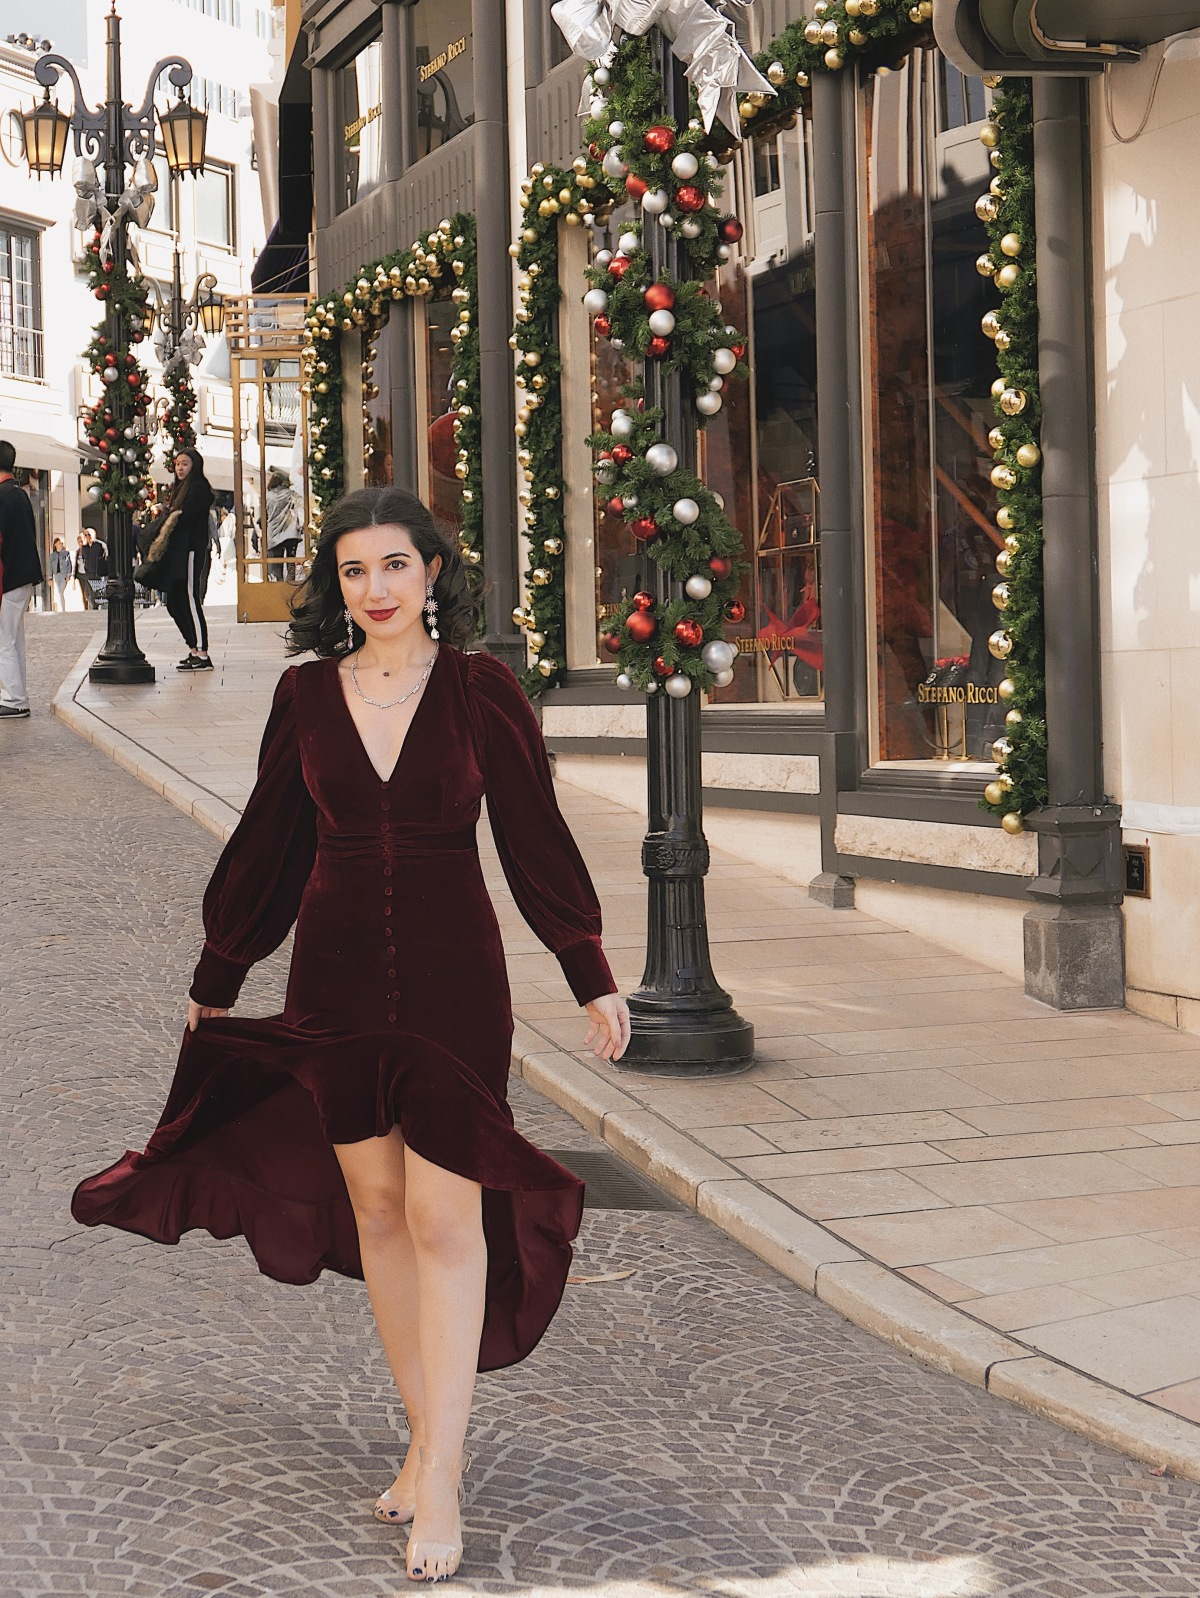 red velvet, Christmas dress, Christmas outfit, gown, red velvet, fashion blogger, LA blogger, Beverly Hills, Christmas in Beverly Hills, Christmas in Los Angeles, high fashion, luxury, Edwardian, vintage, rhinestone necklace, rhinestone earrings, Nanamacs, Jeffrey Campbell shoes, curly hair, red lips